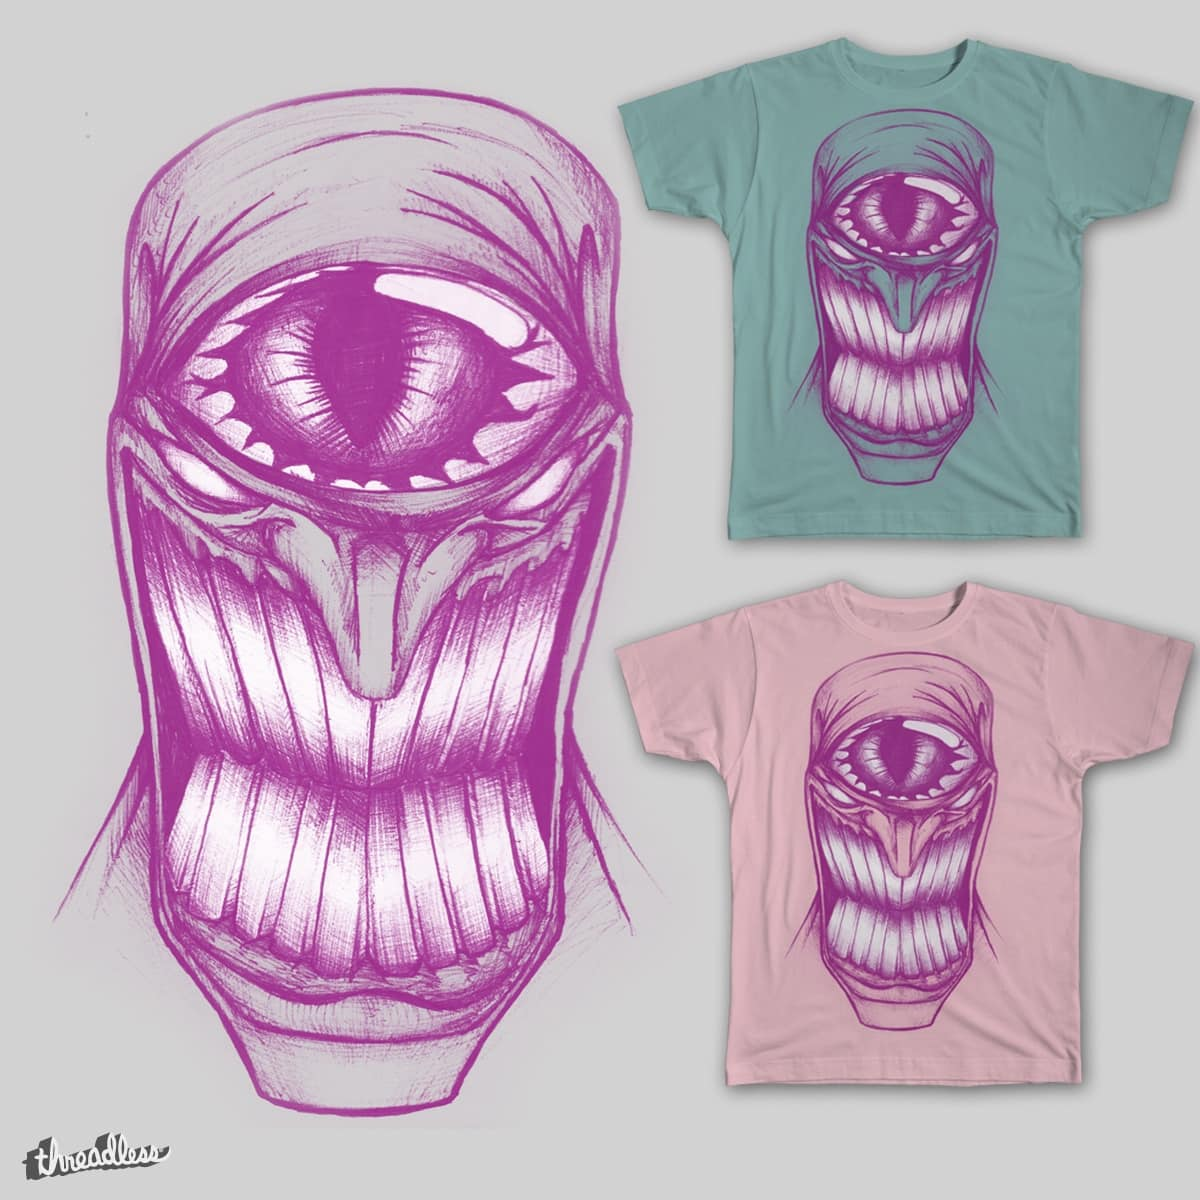 Third Eye Smile by daniel.balkazar on Threadless